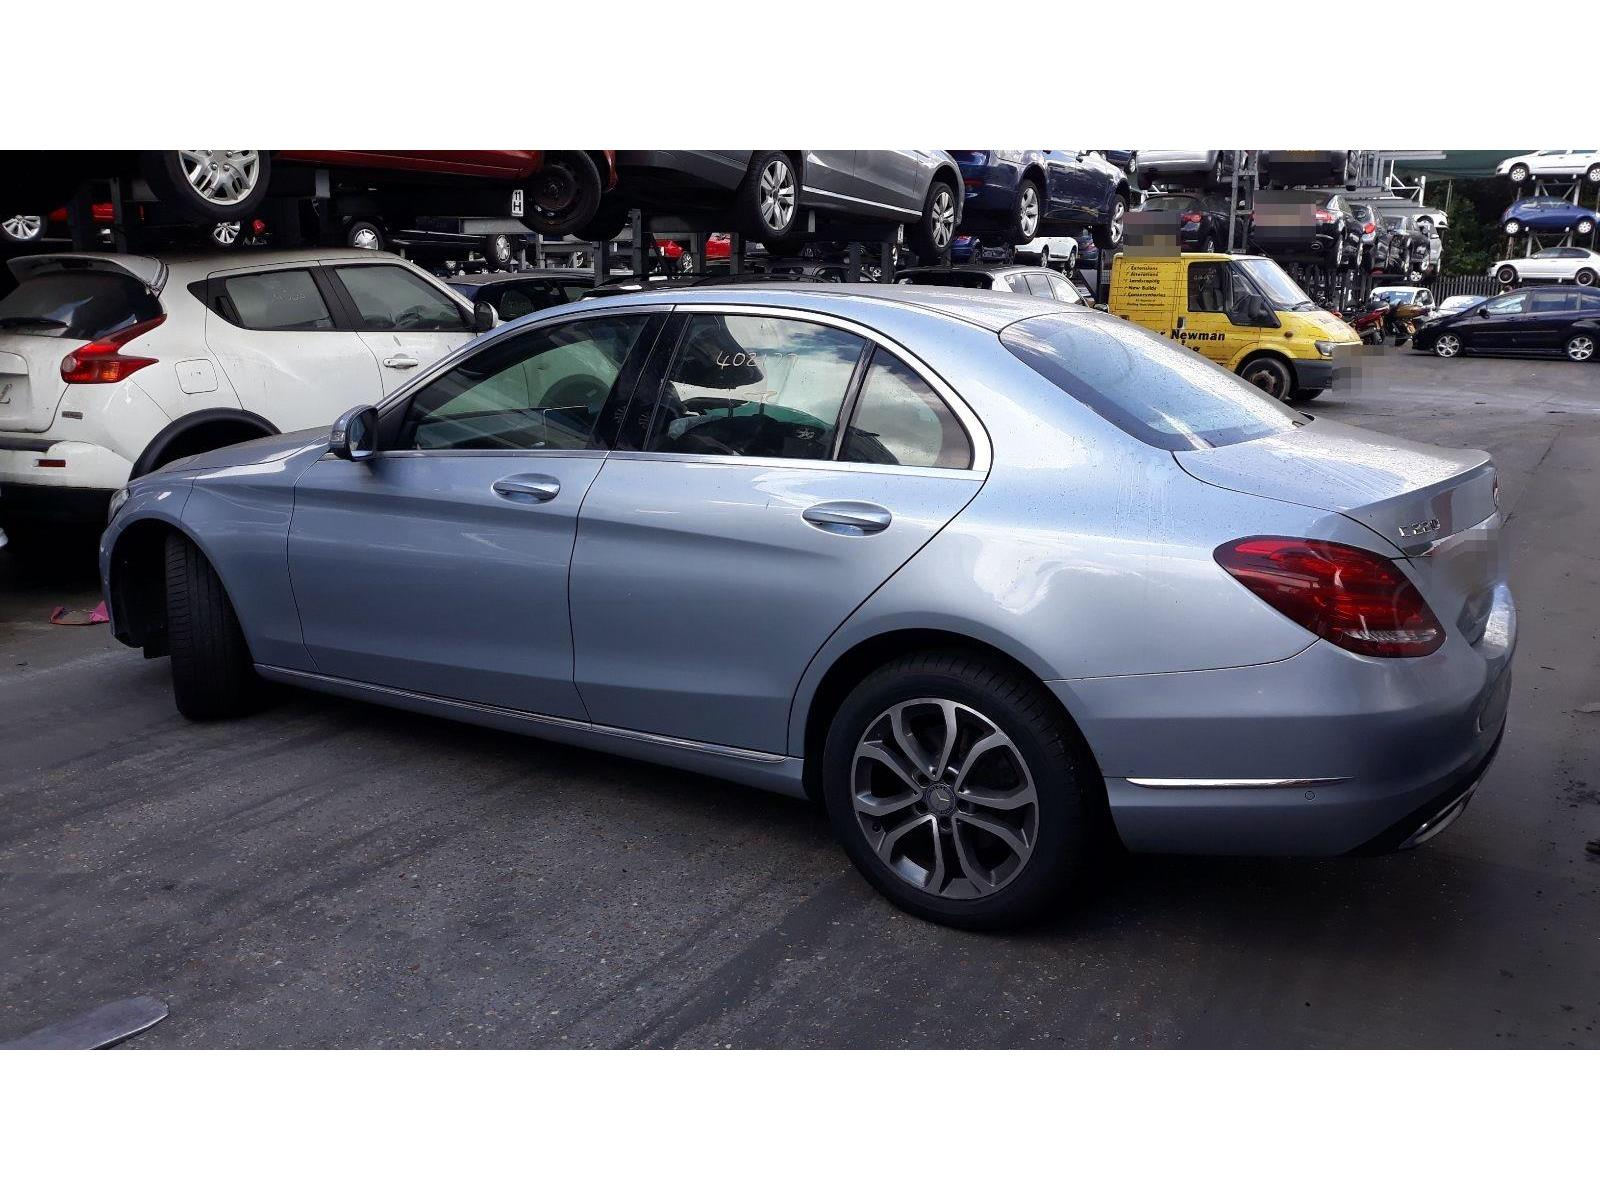 hight resolution of 1674 parts matching mercedes benz